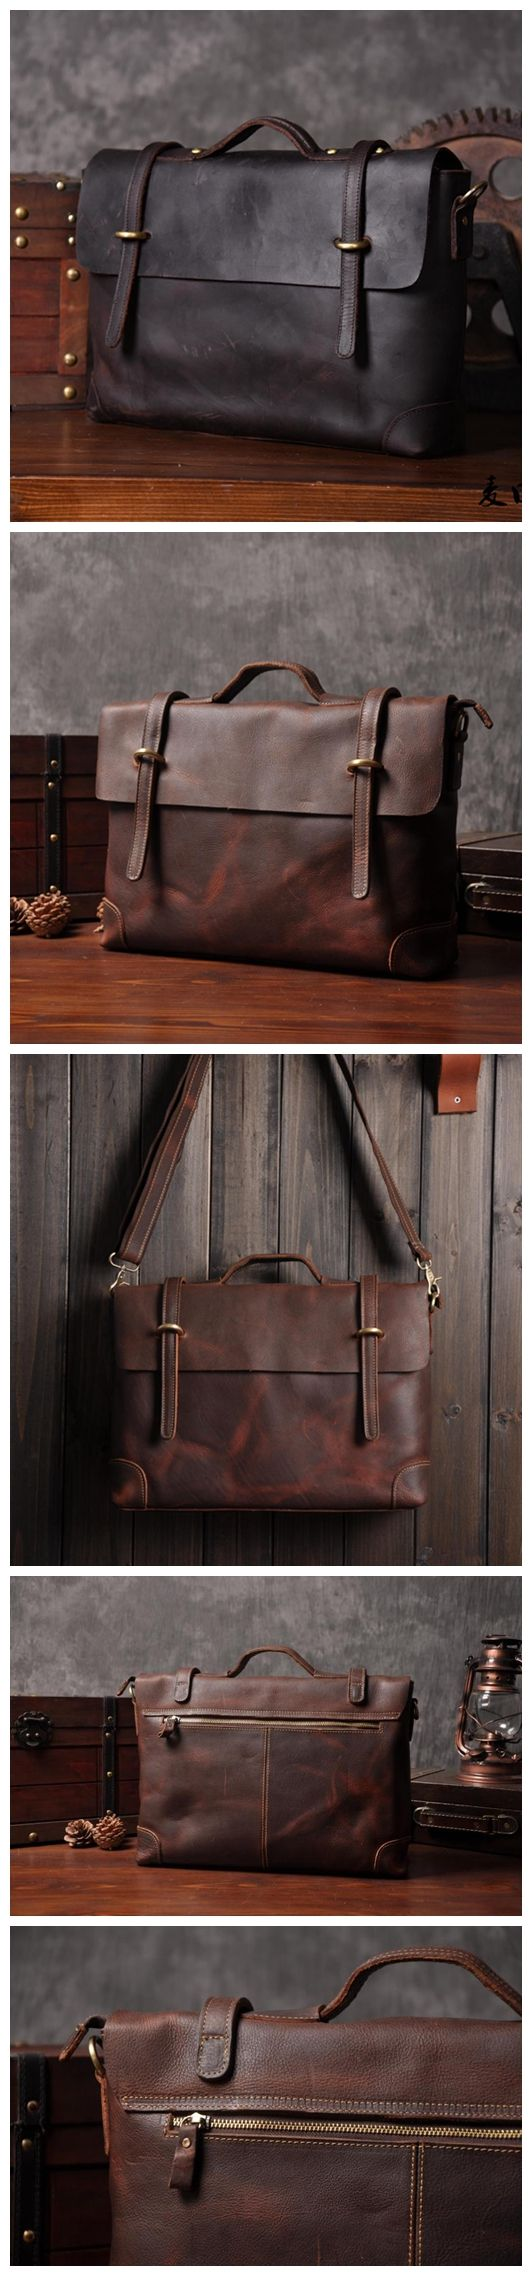 CRAZY HORSE LEATHER BRIEFCASE, MESSENGER BAG, LAPTOP BAG, BUSINESS MEN'S BAG, MEN'S FASHION, LEATHER CASE, SCHOOL BAG, COOL MESSENGER ,GOOD DESIGN FOR MEN